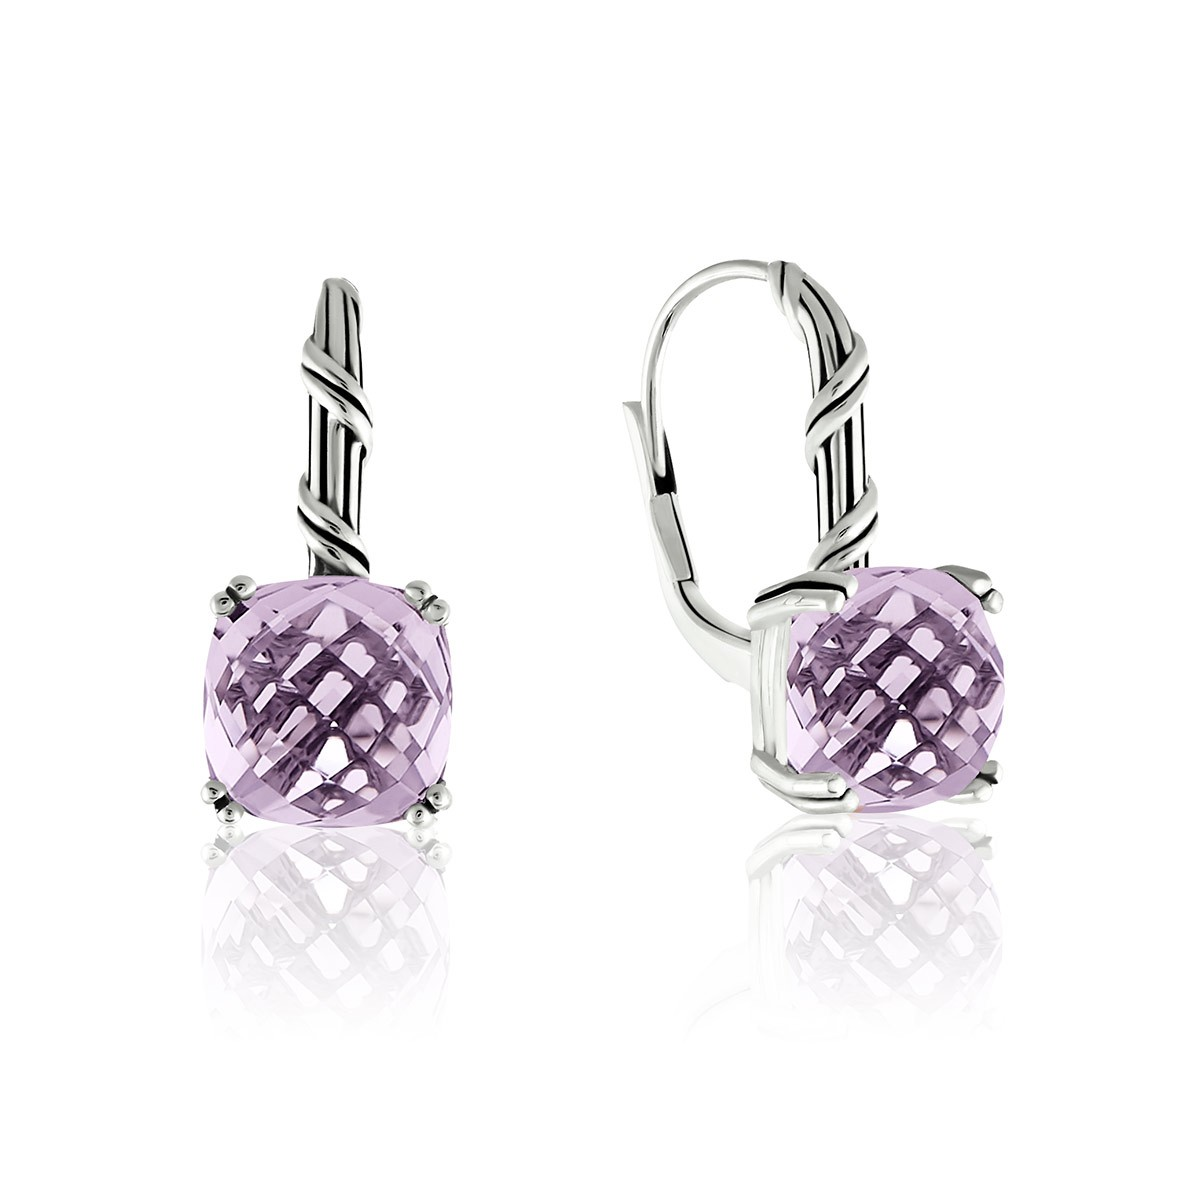 Fantasies Lavender Amethyst Drop Earrings in sterling silver